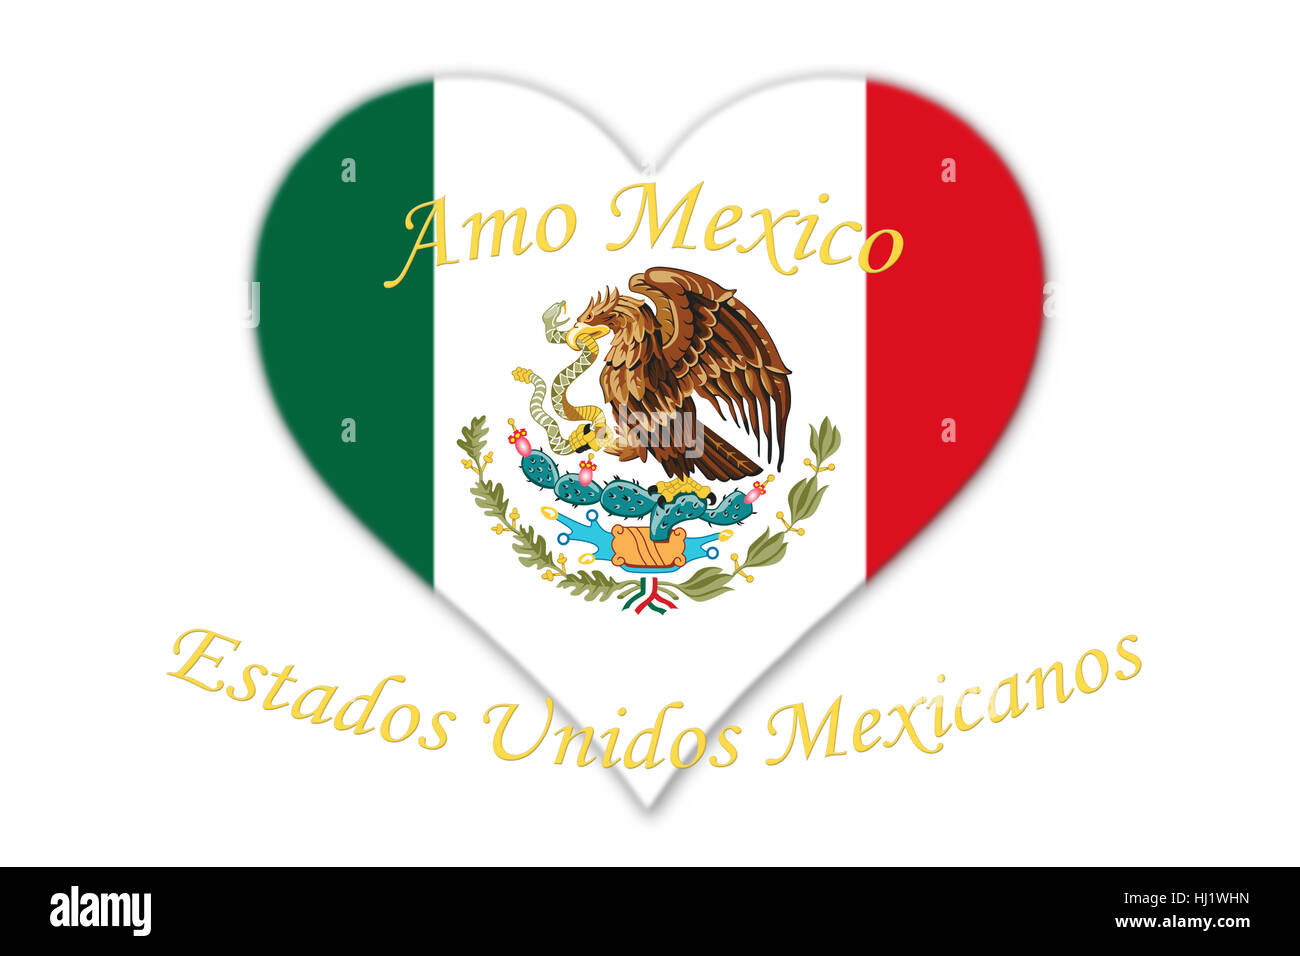 Mexican national flag with eagle coat of arms in shape of heart with mexican national flag with eagle coat of arms in shape of heart with text amo mexico and estados unidos mexicanos meaning love mexico and united mex biocorpaavc Choice Image